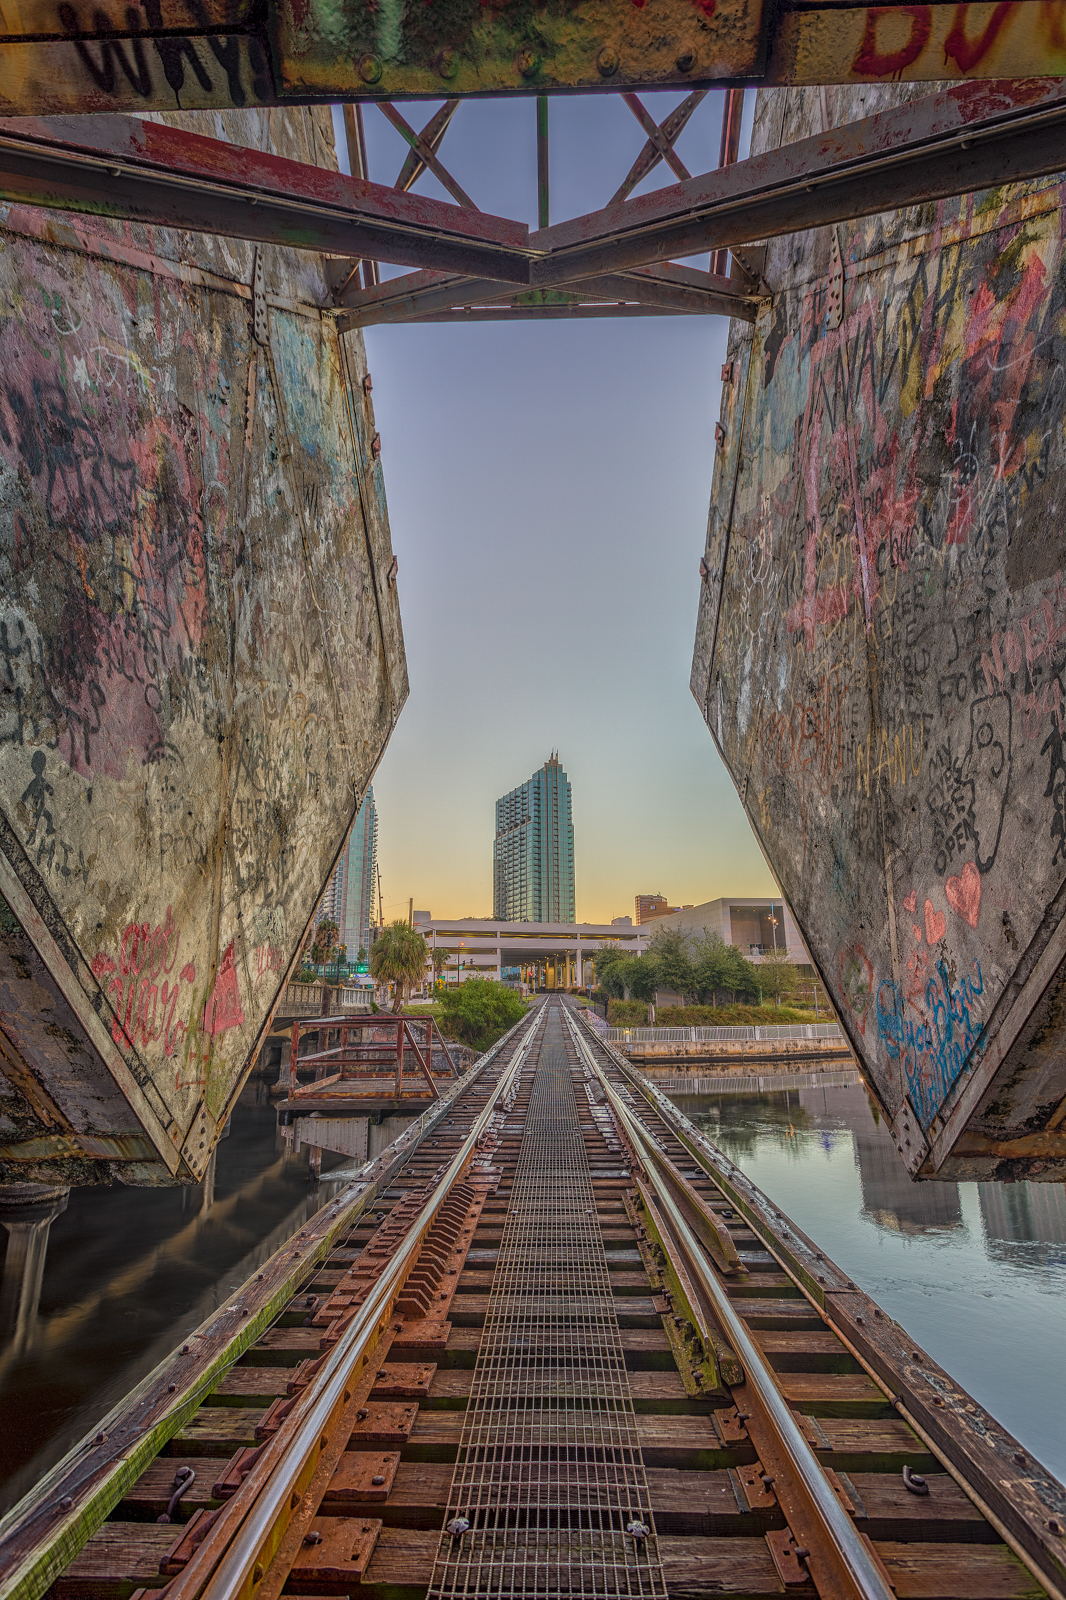 Train Tracks to Skypoint